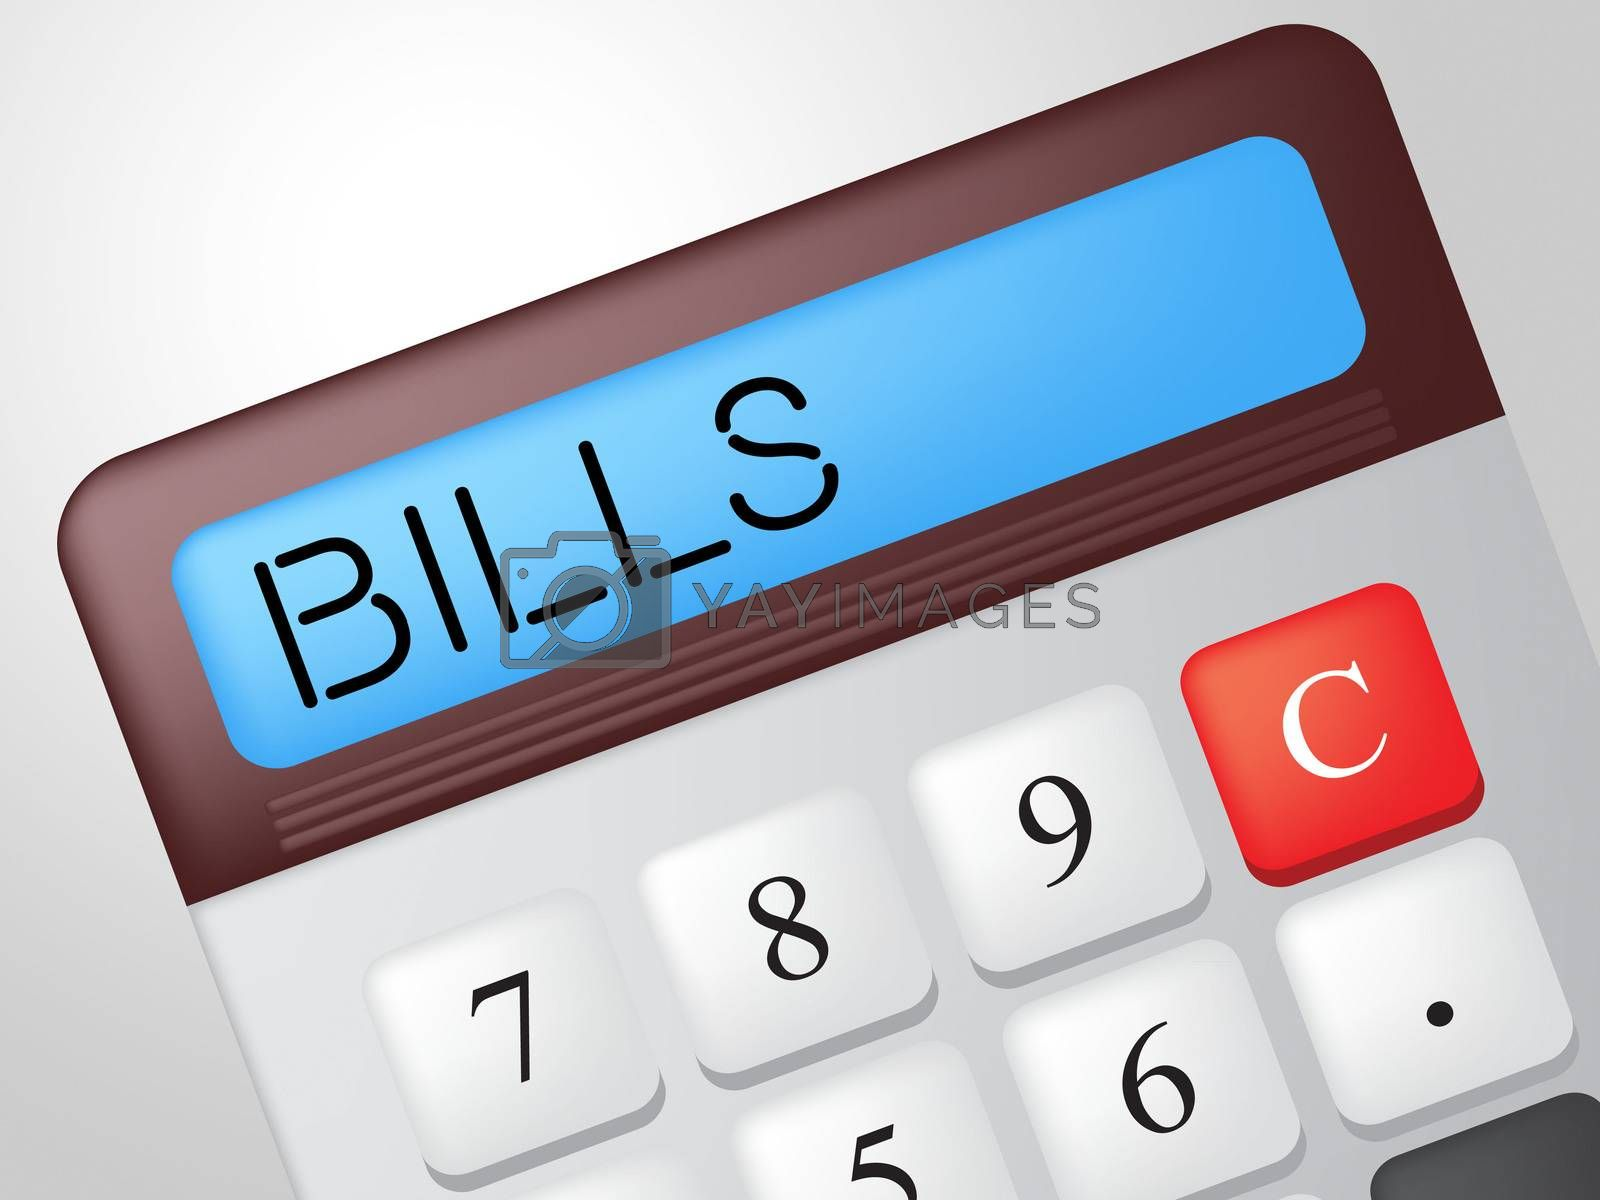 Bills Calculator Means Receipt Accounting And Costs by stuartmiles